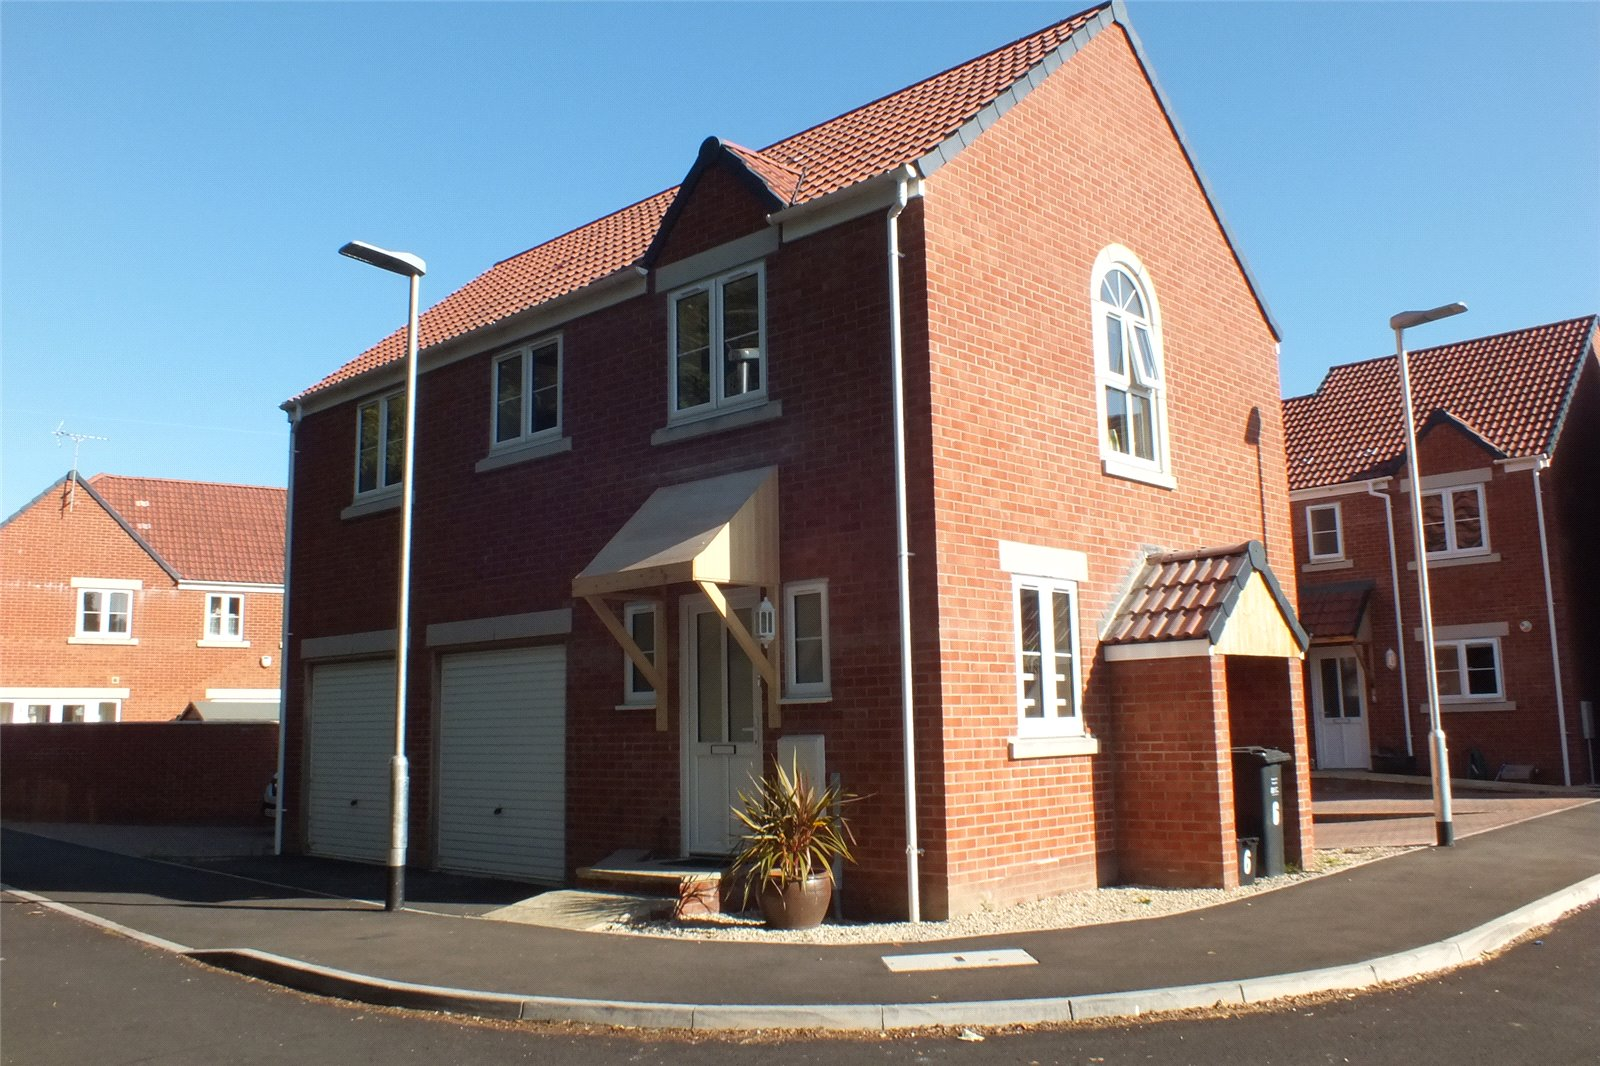 2 Bedrooms Flat for rent in Little Court Berrow Nr Burnham On Sea TA8